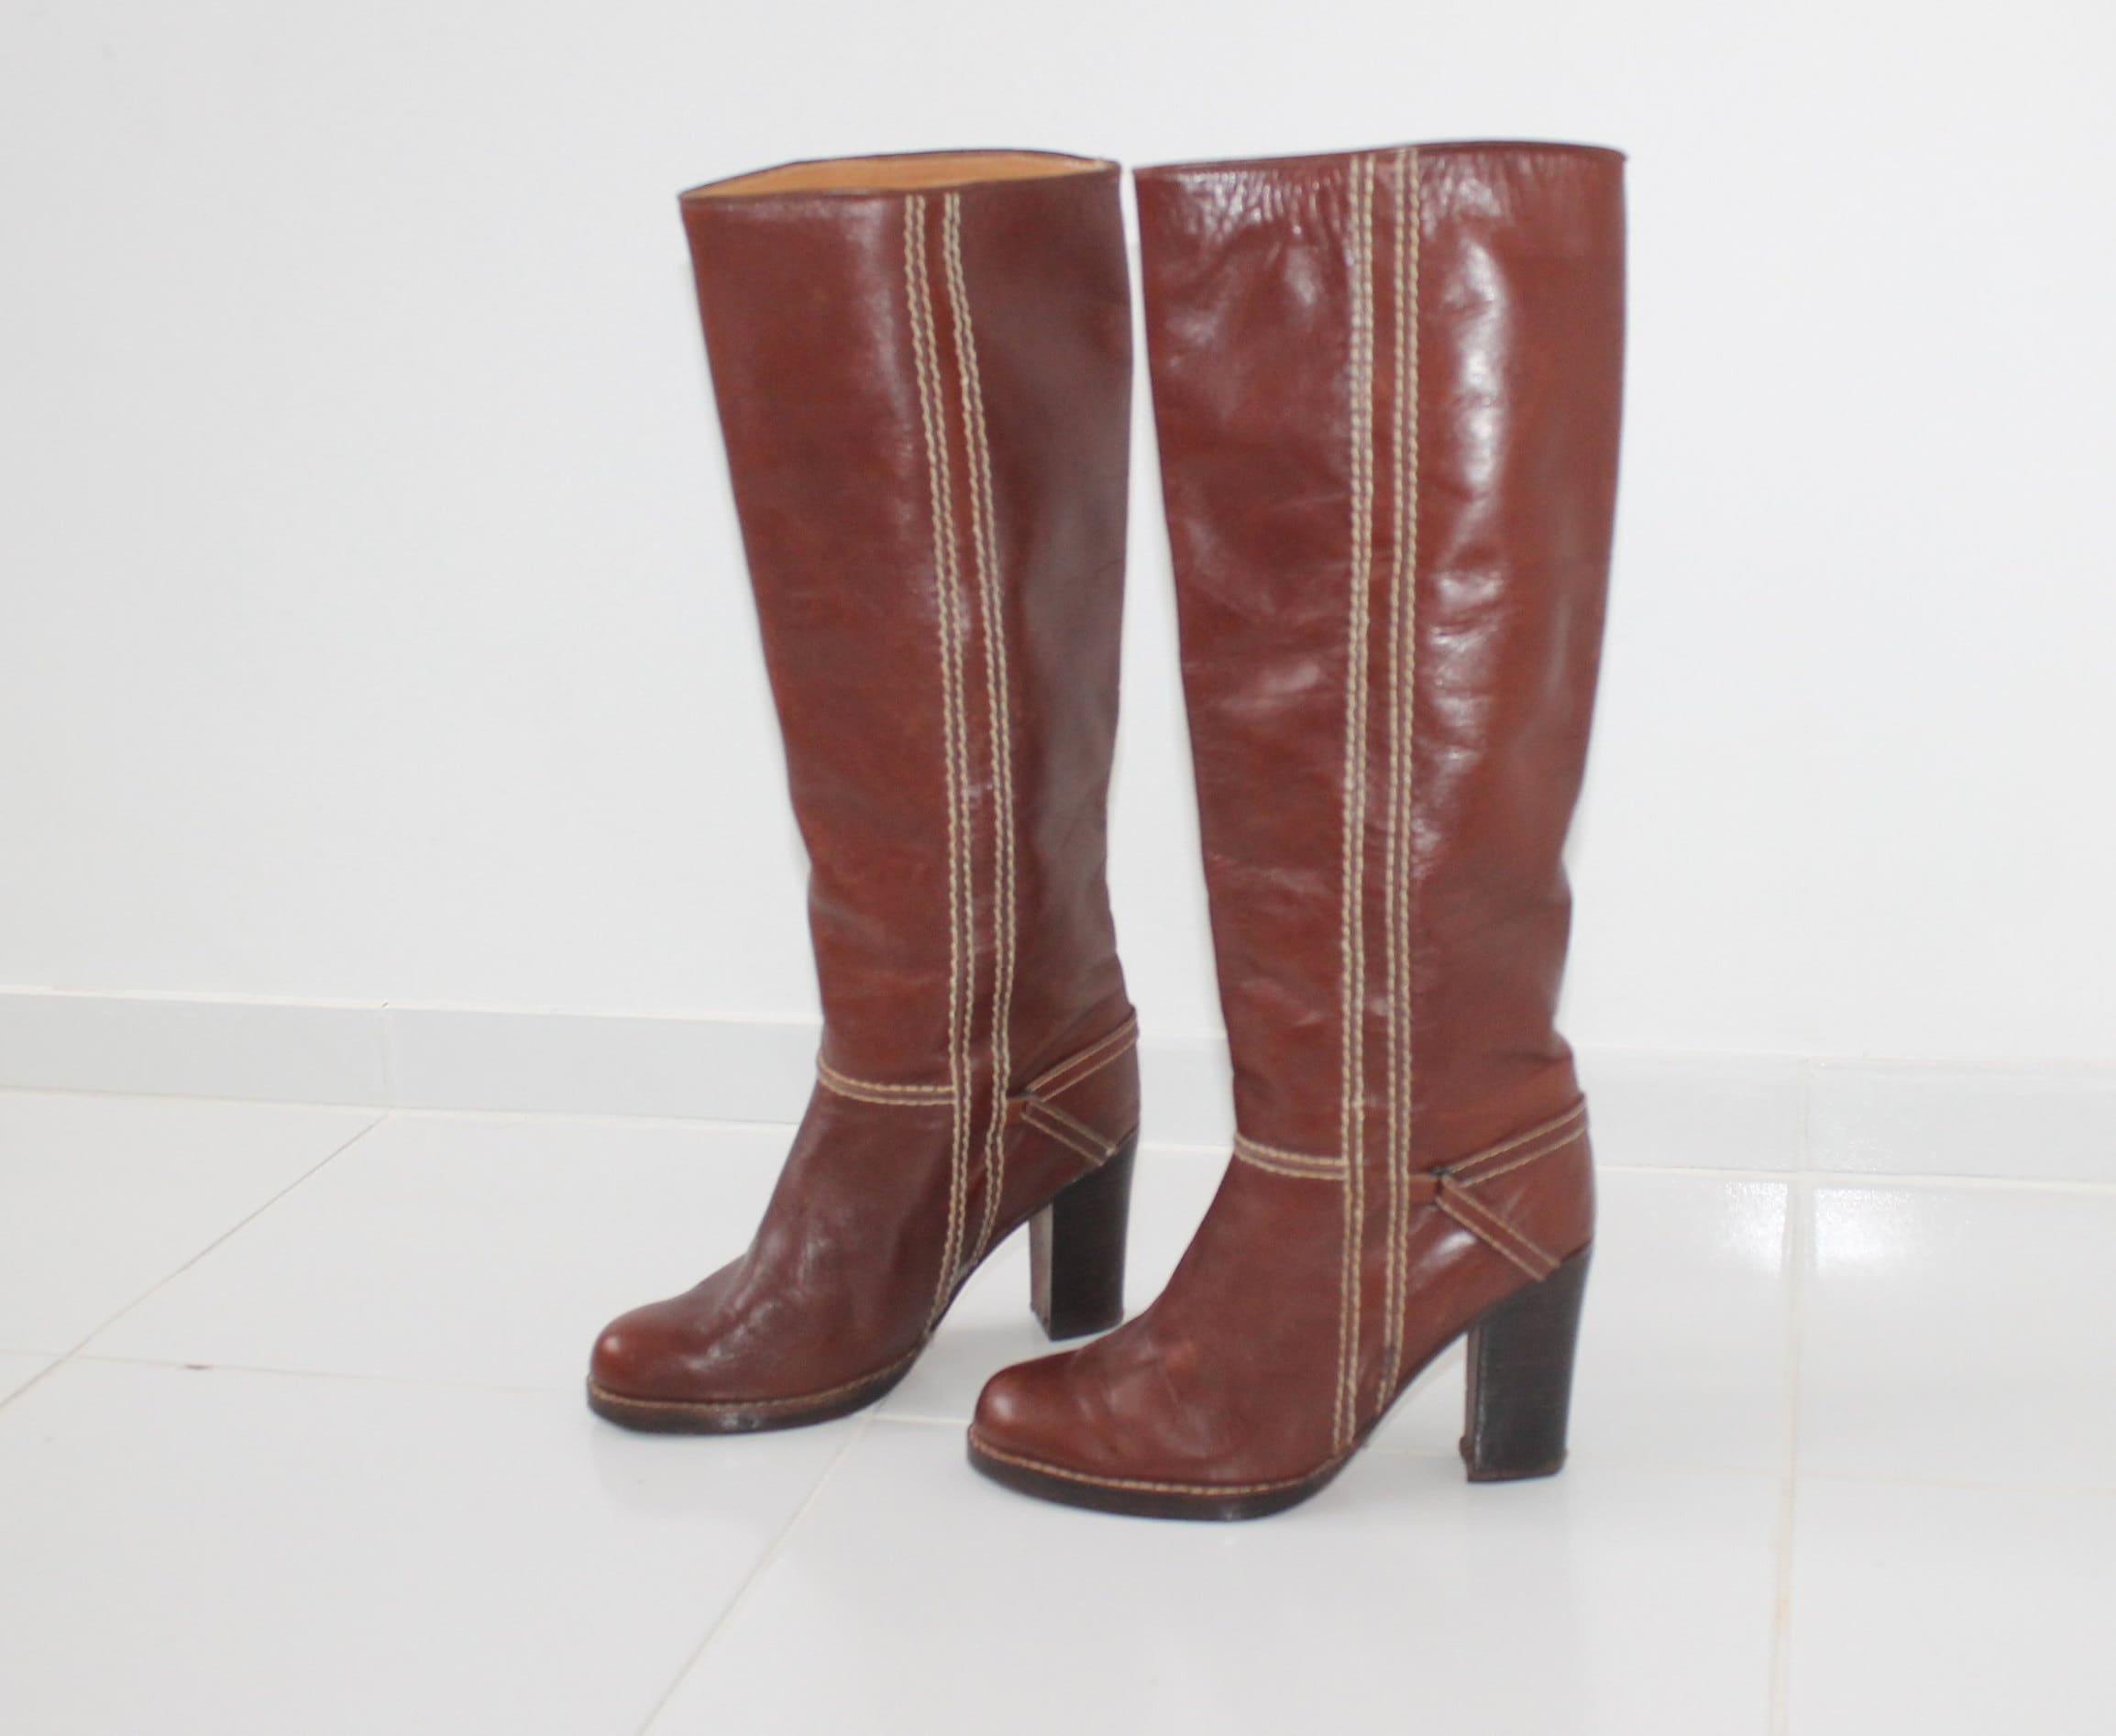 93f67ec7bc5 US 6.5 Leather Long Equestrian Boots 90s Vintage Cognac Brown